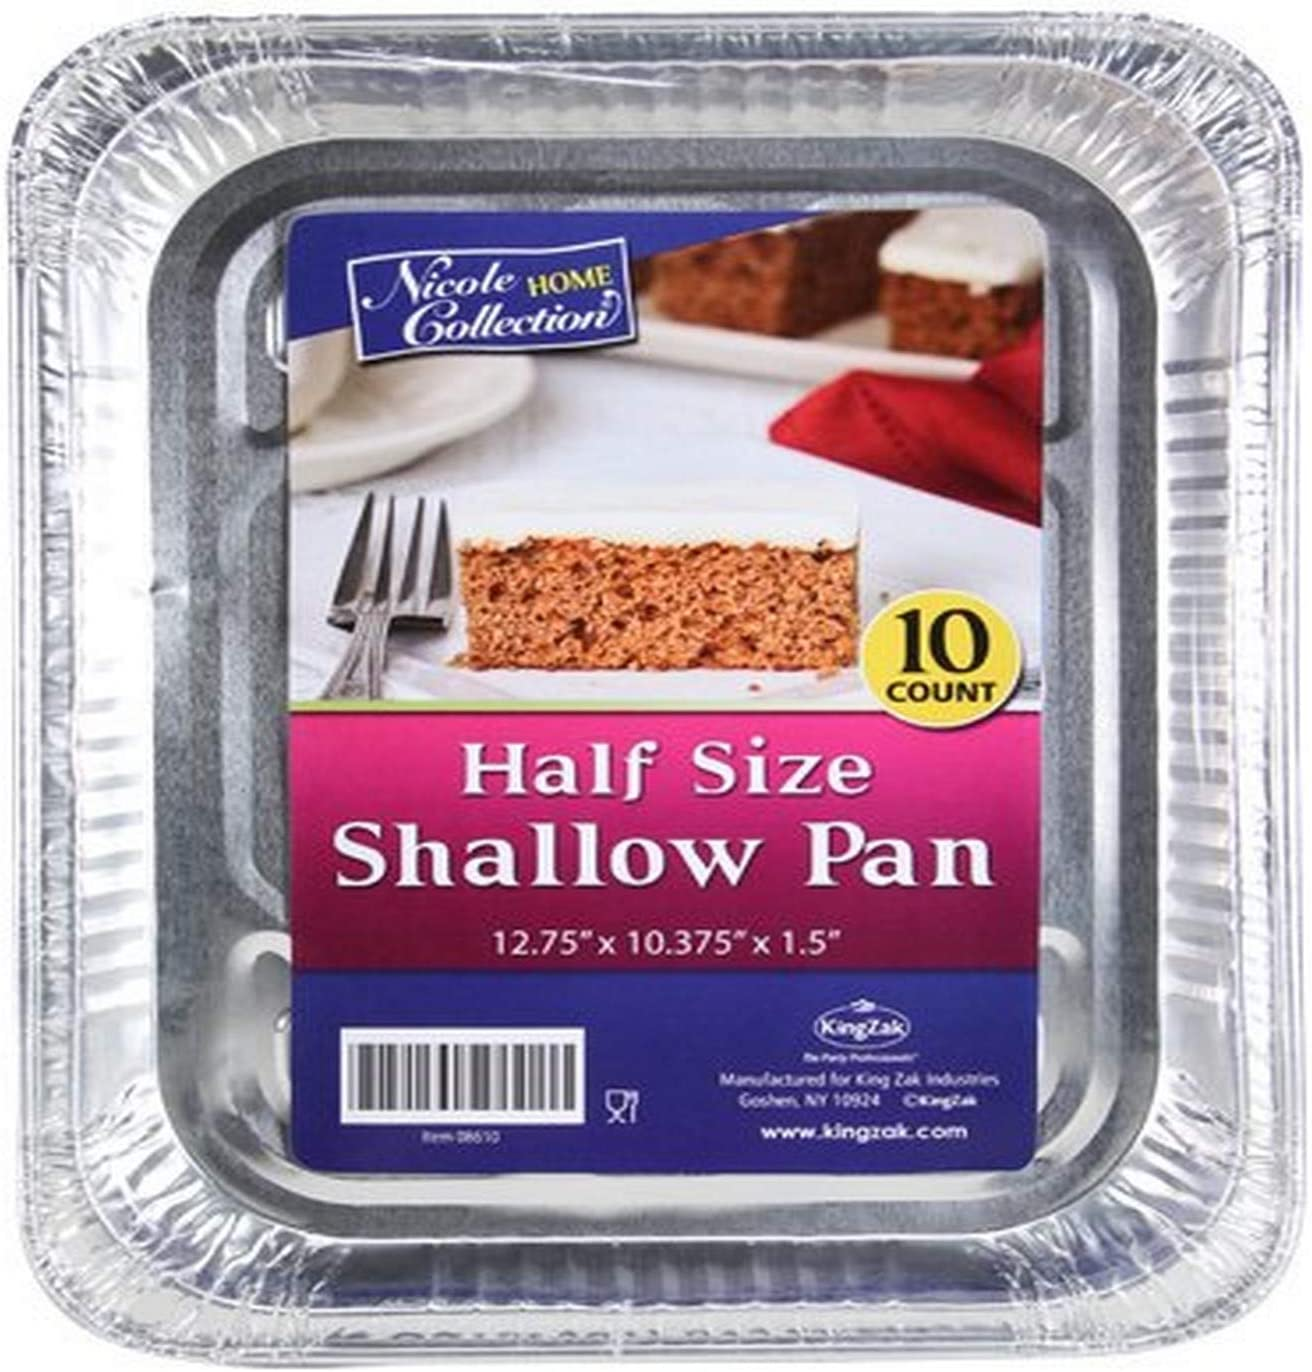 Nicole Selling Home shipfree Collection Half Size Shallow Pack 10 Aluminum Pan of